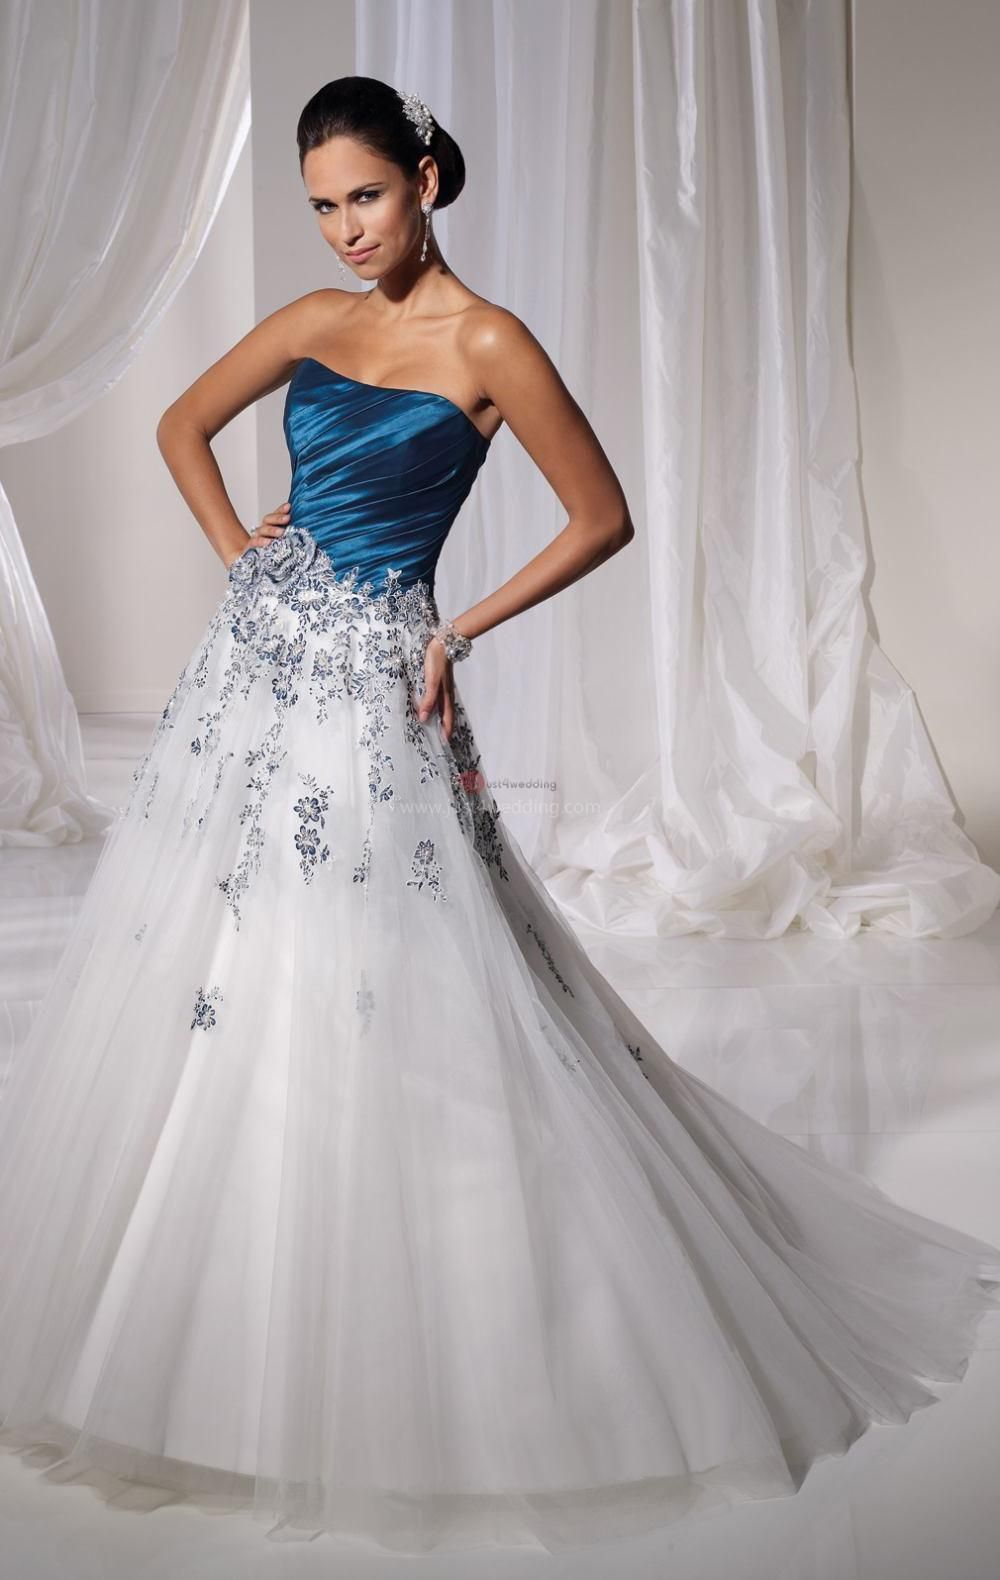 A light blue or turquoise sash would look absolutely for Blue sash for wedding dress